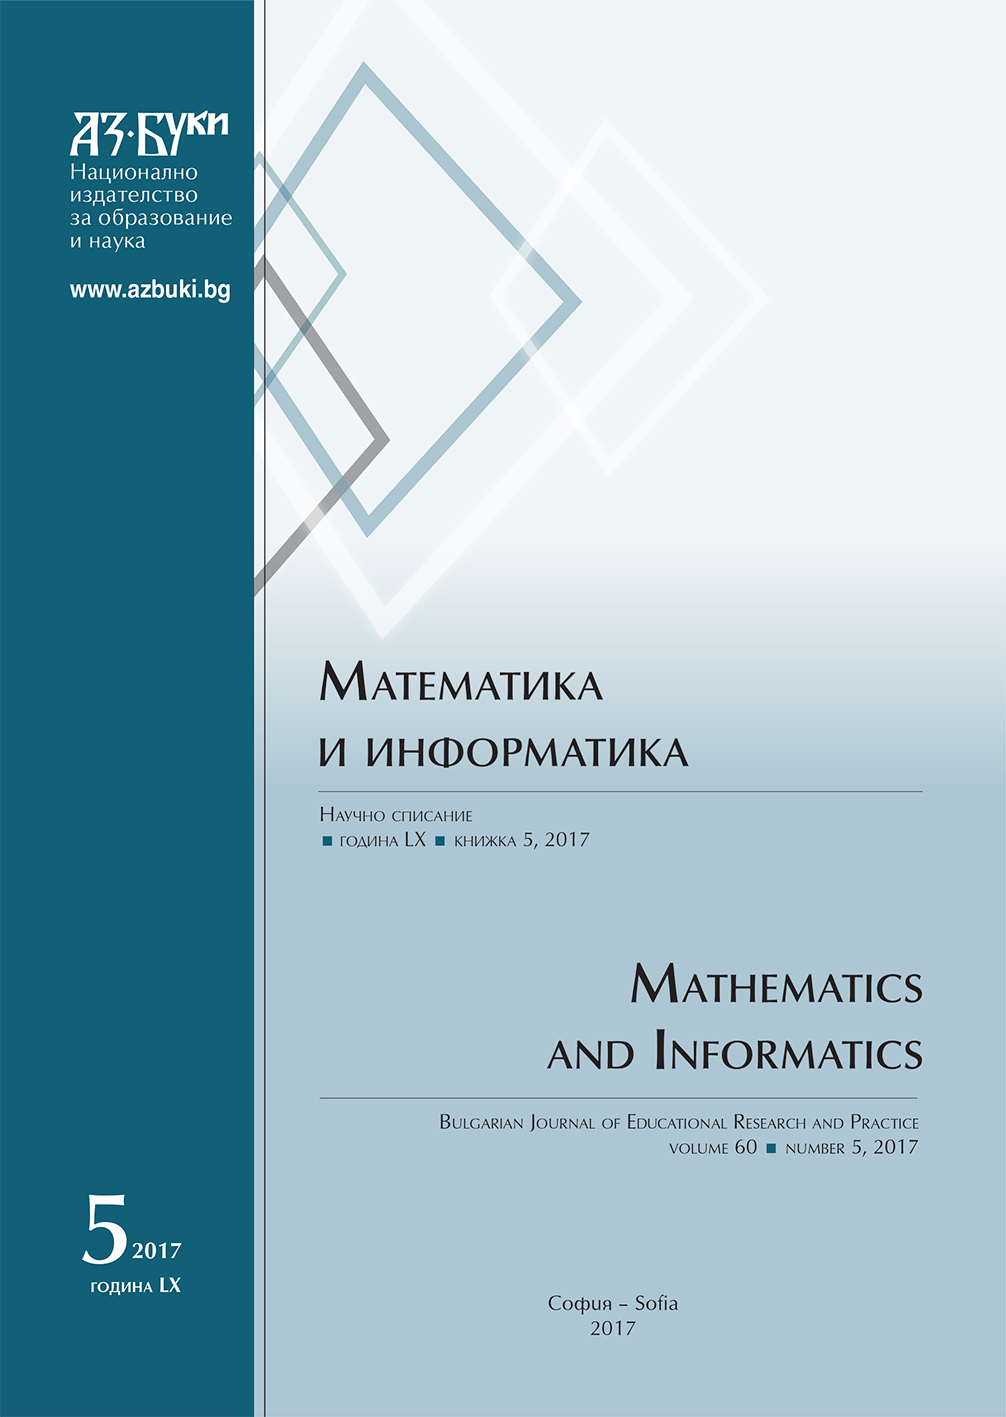 Information Integrative Relationships in the Competent Approach in Mathematics Technology Training Cover Image